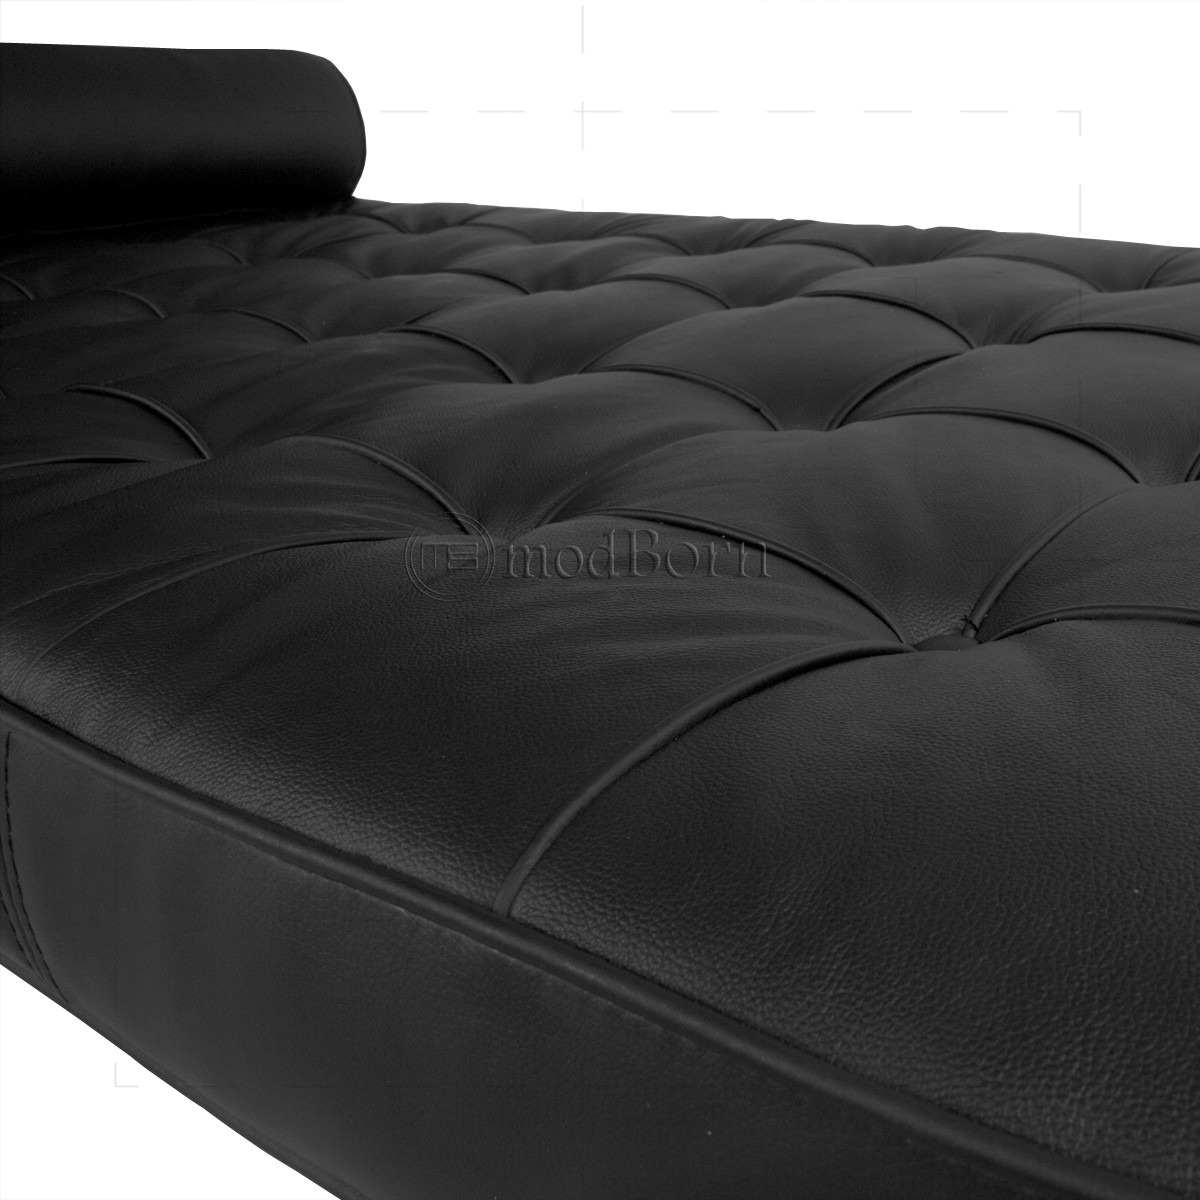 ludwig mies van der rohe barcelona style day bed black leather. Black Bedroom Furniture Sets. Home Design Ideas